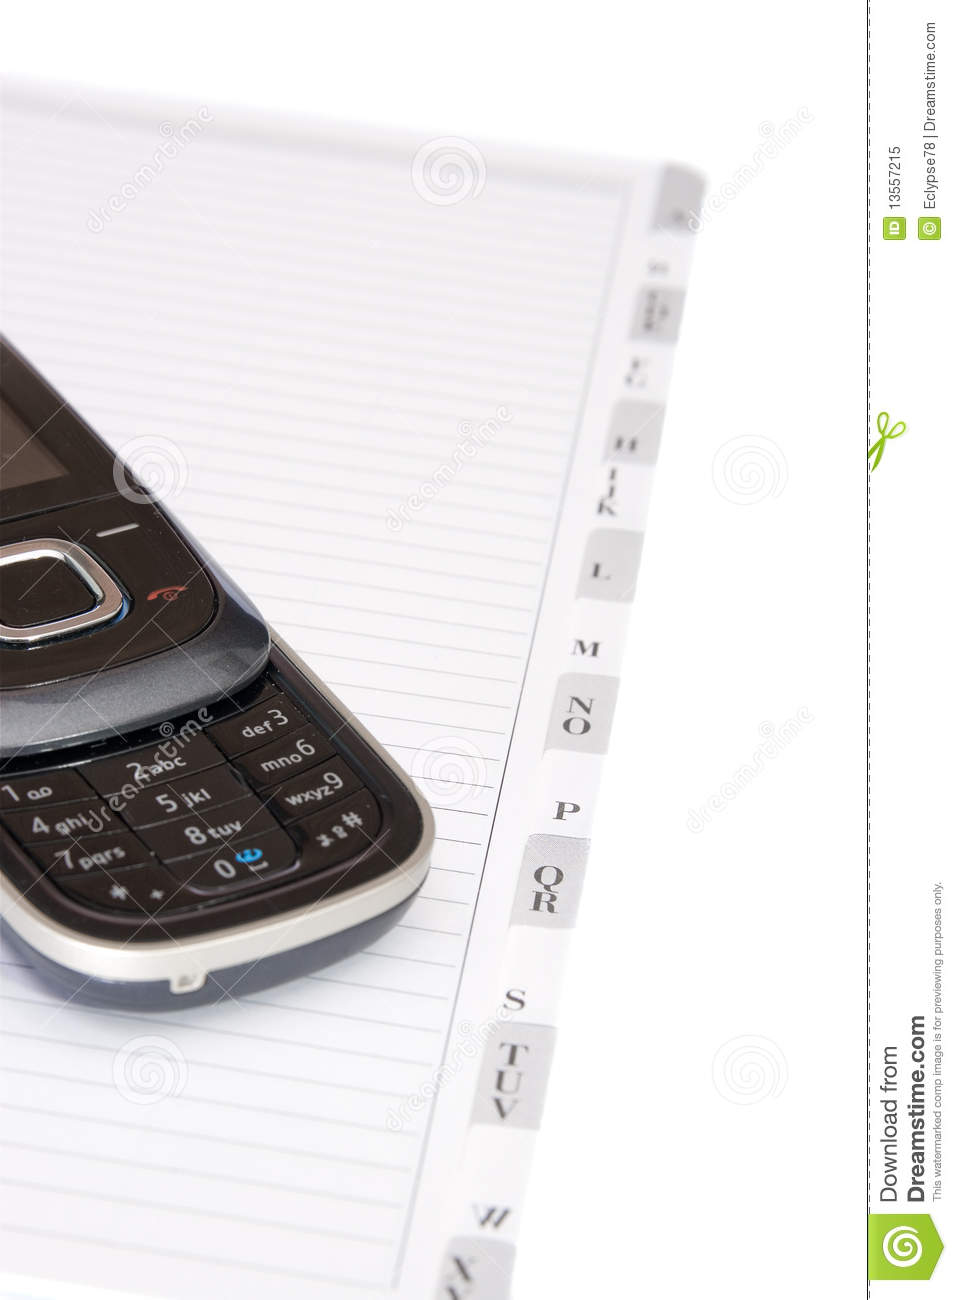 Mobile phone book germany